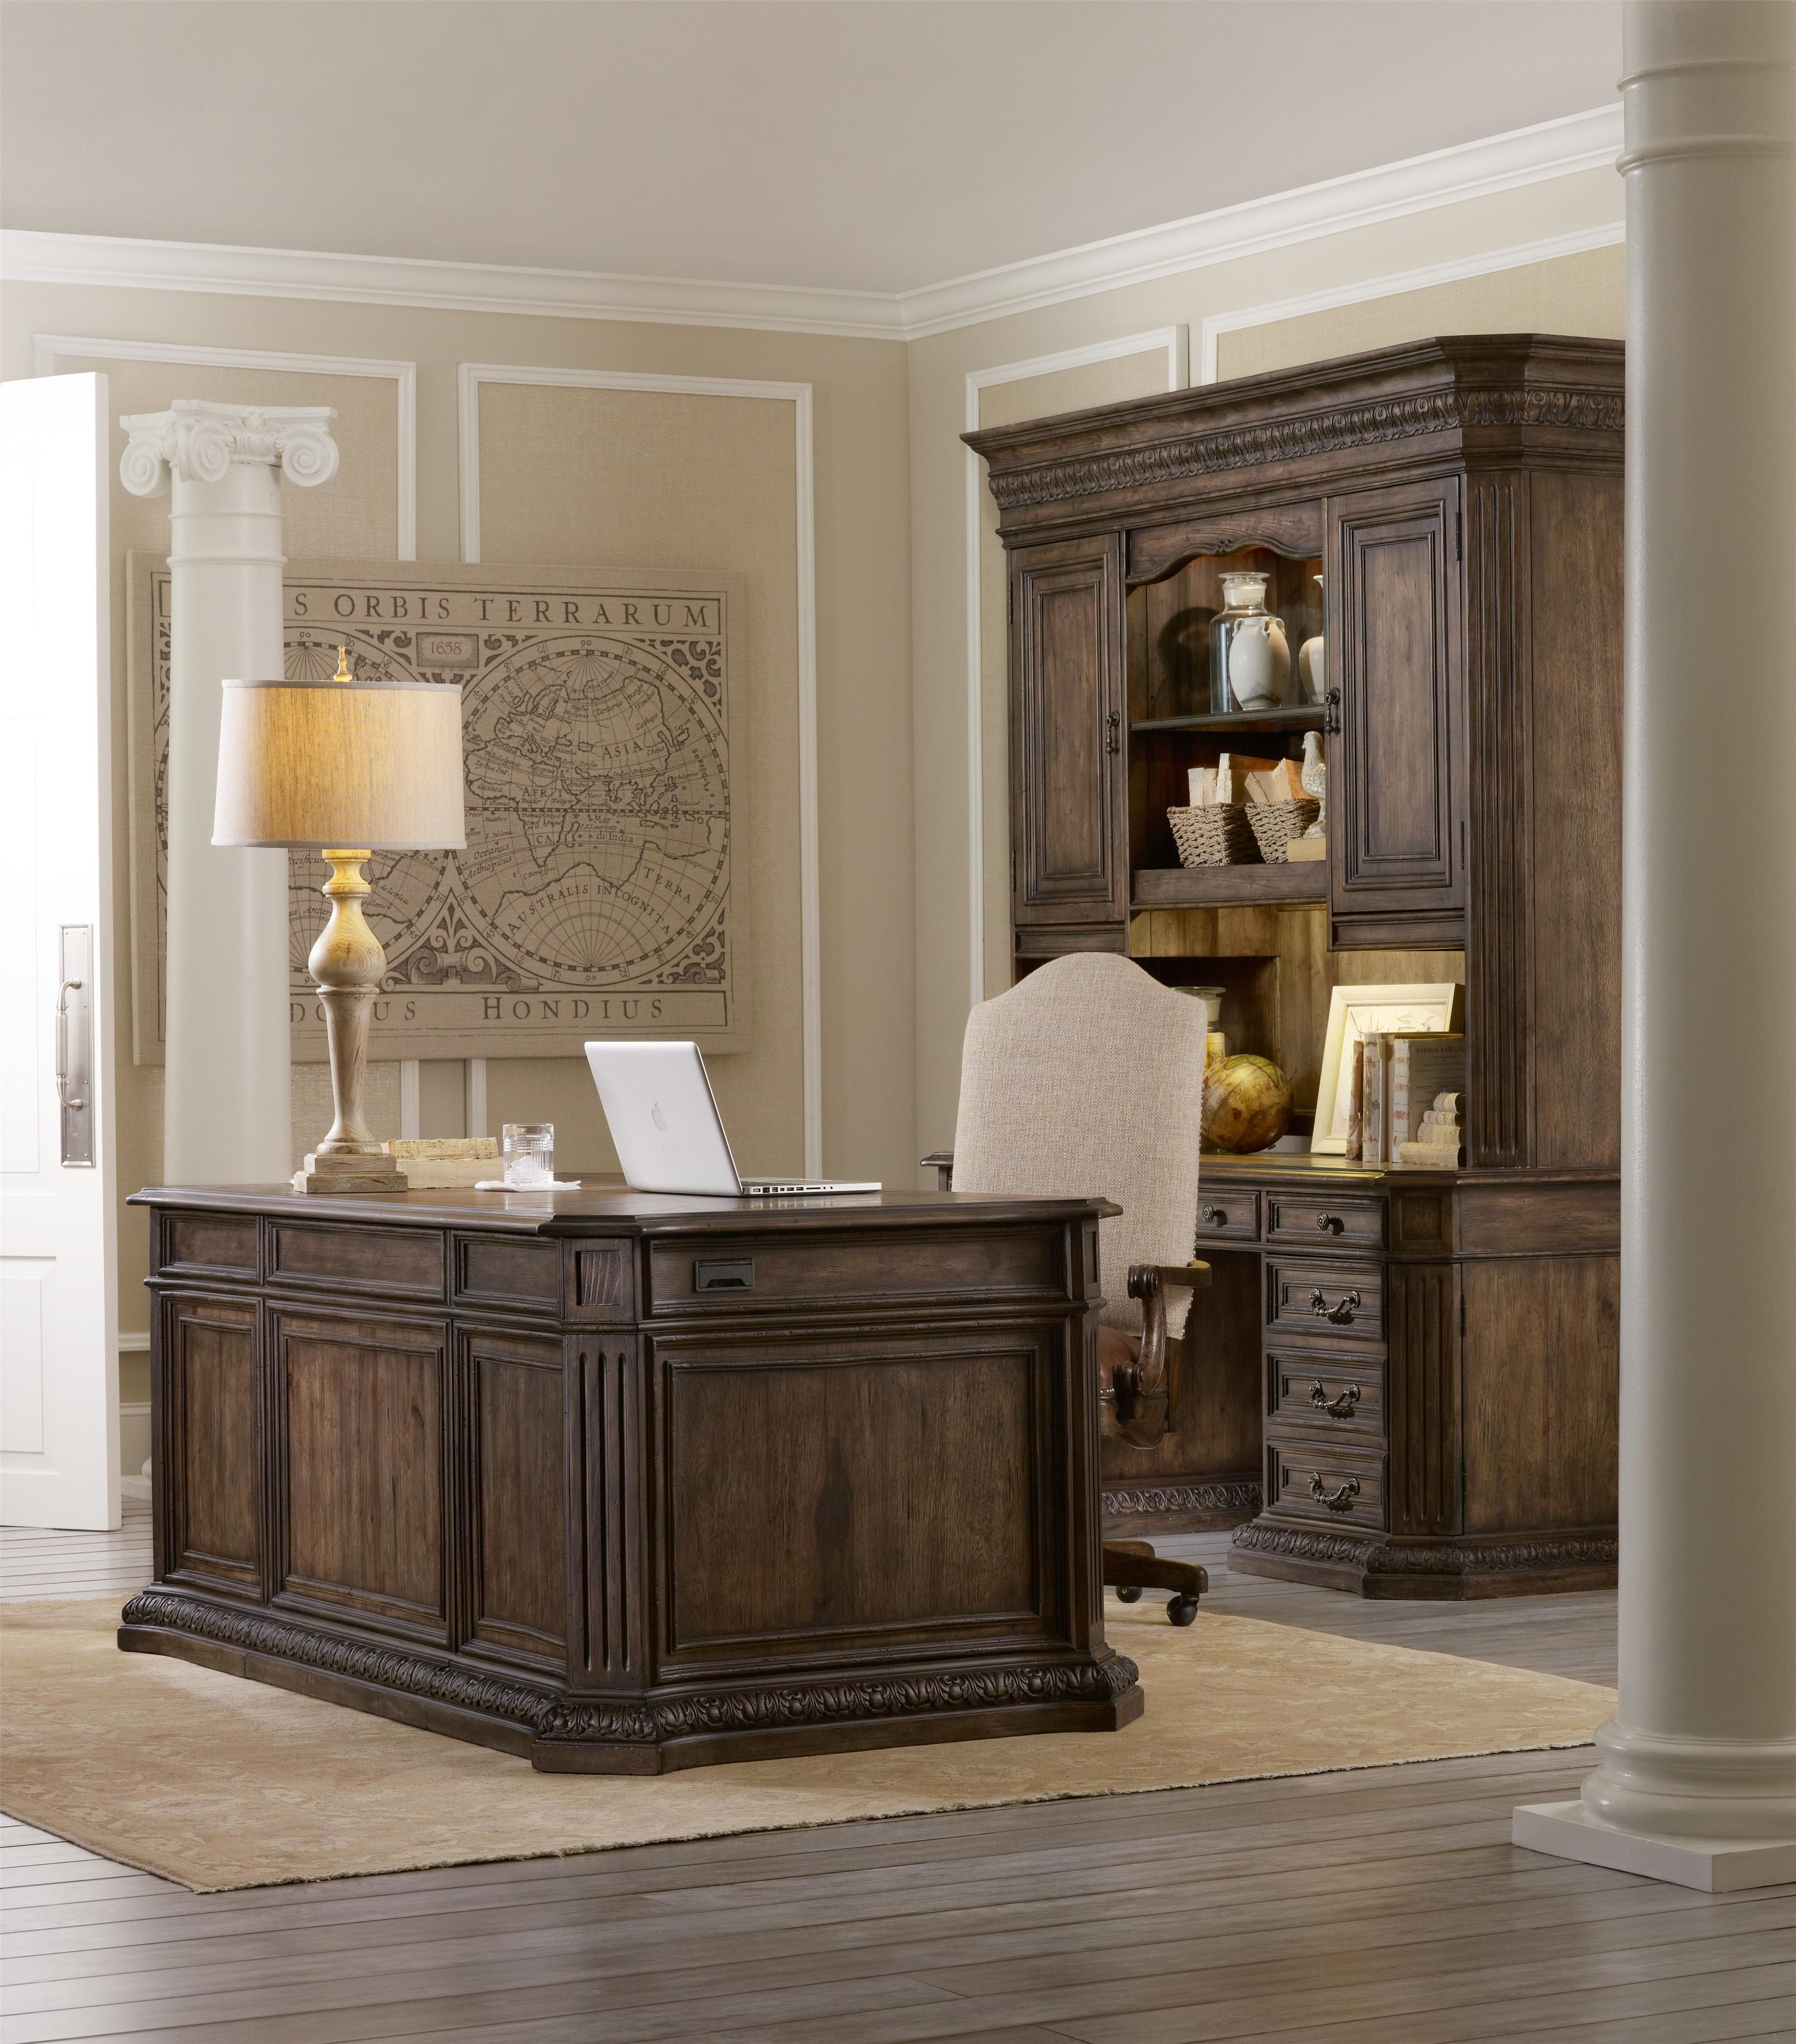 furniture telluride home iteminformation hooker panels w executive office wood desk